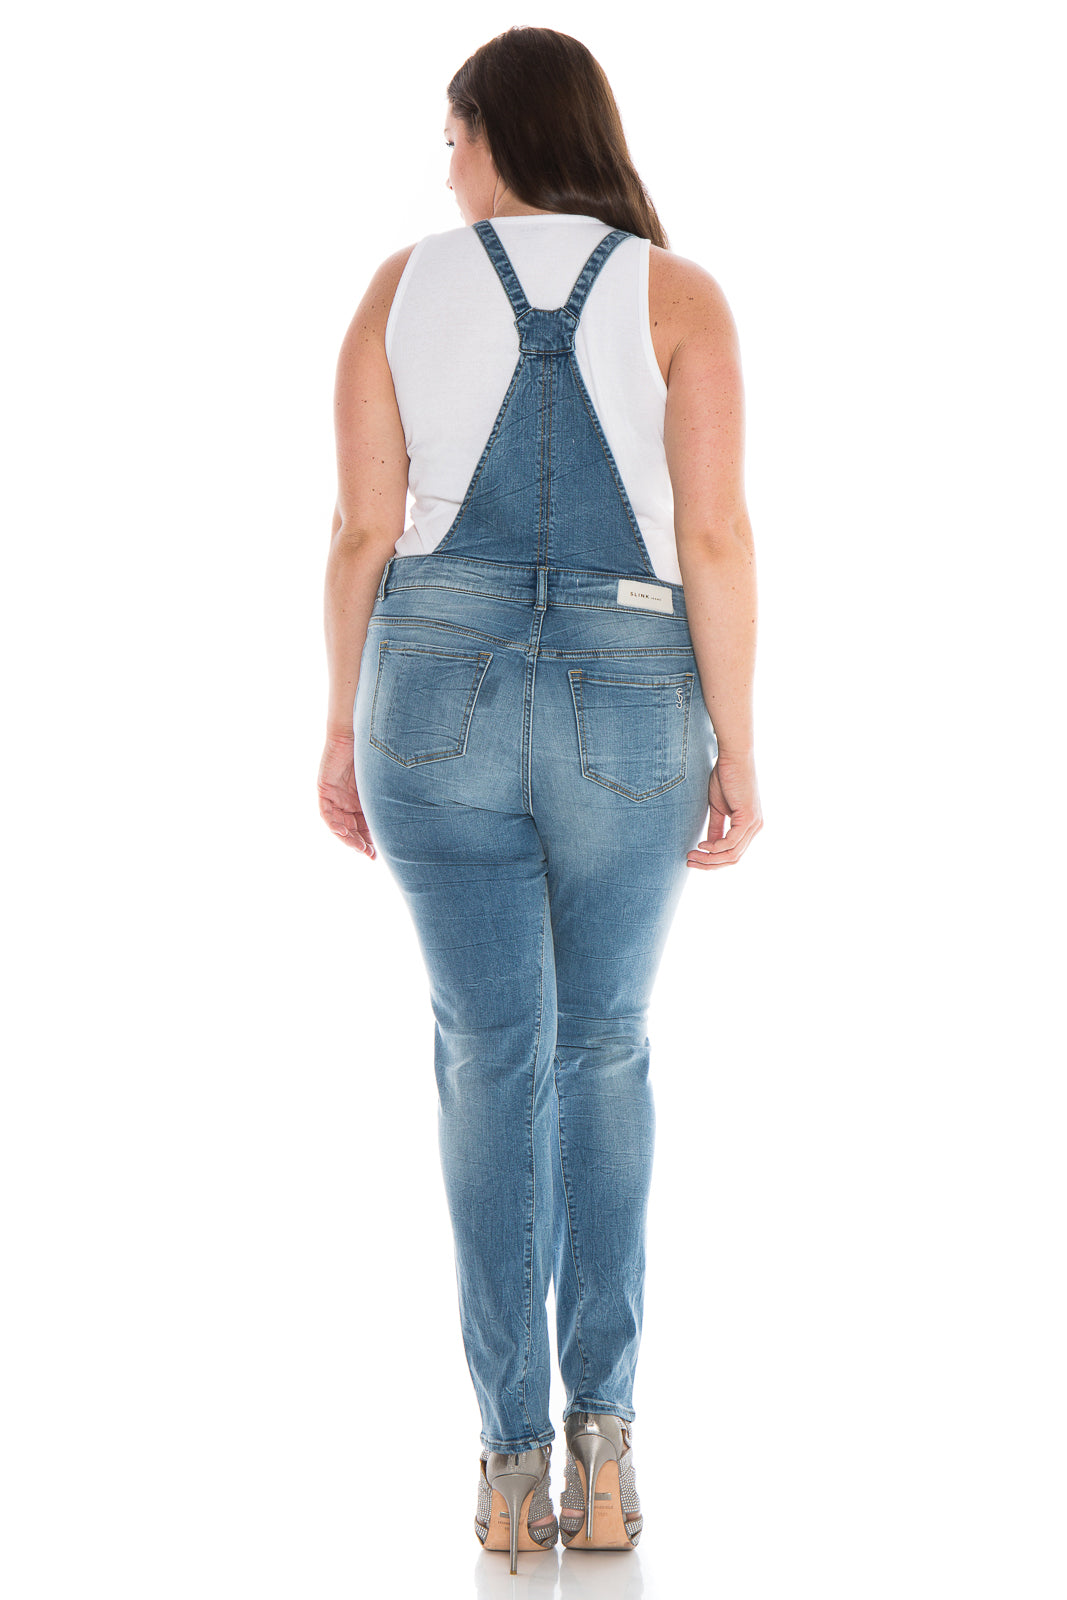 The Overall - ANNA